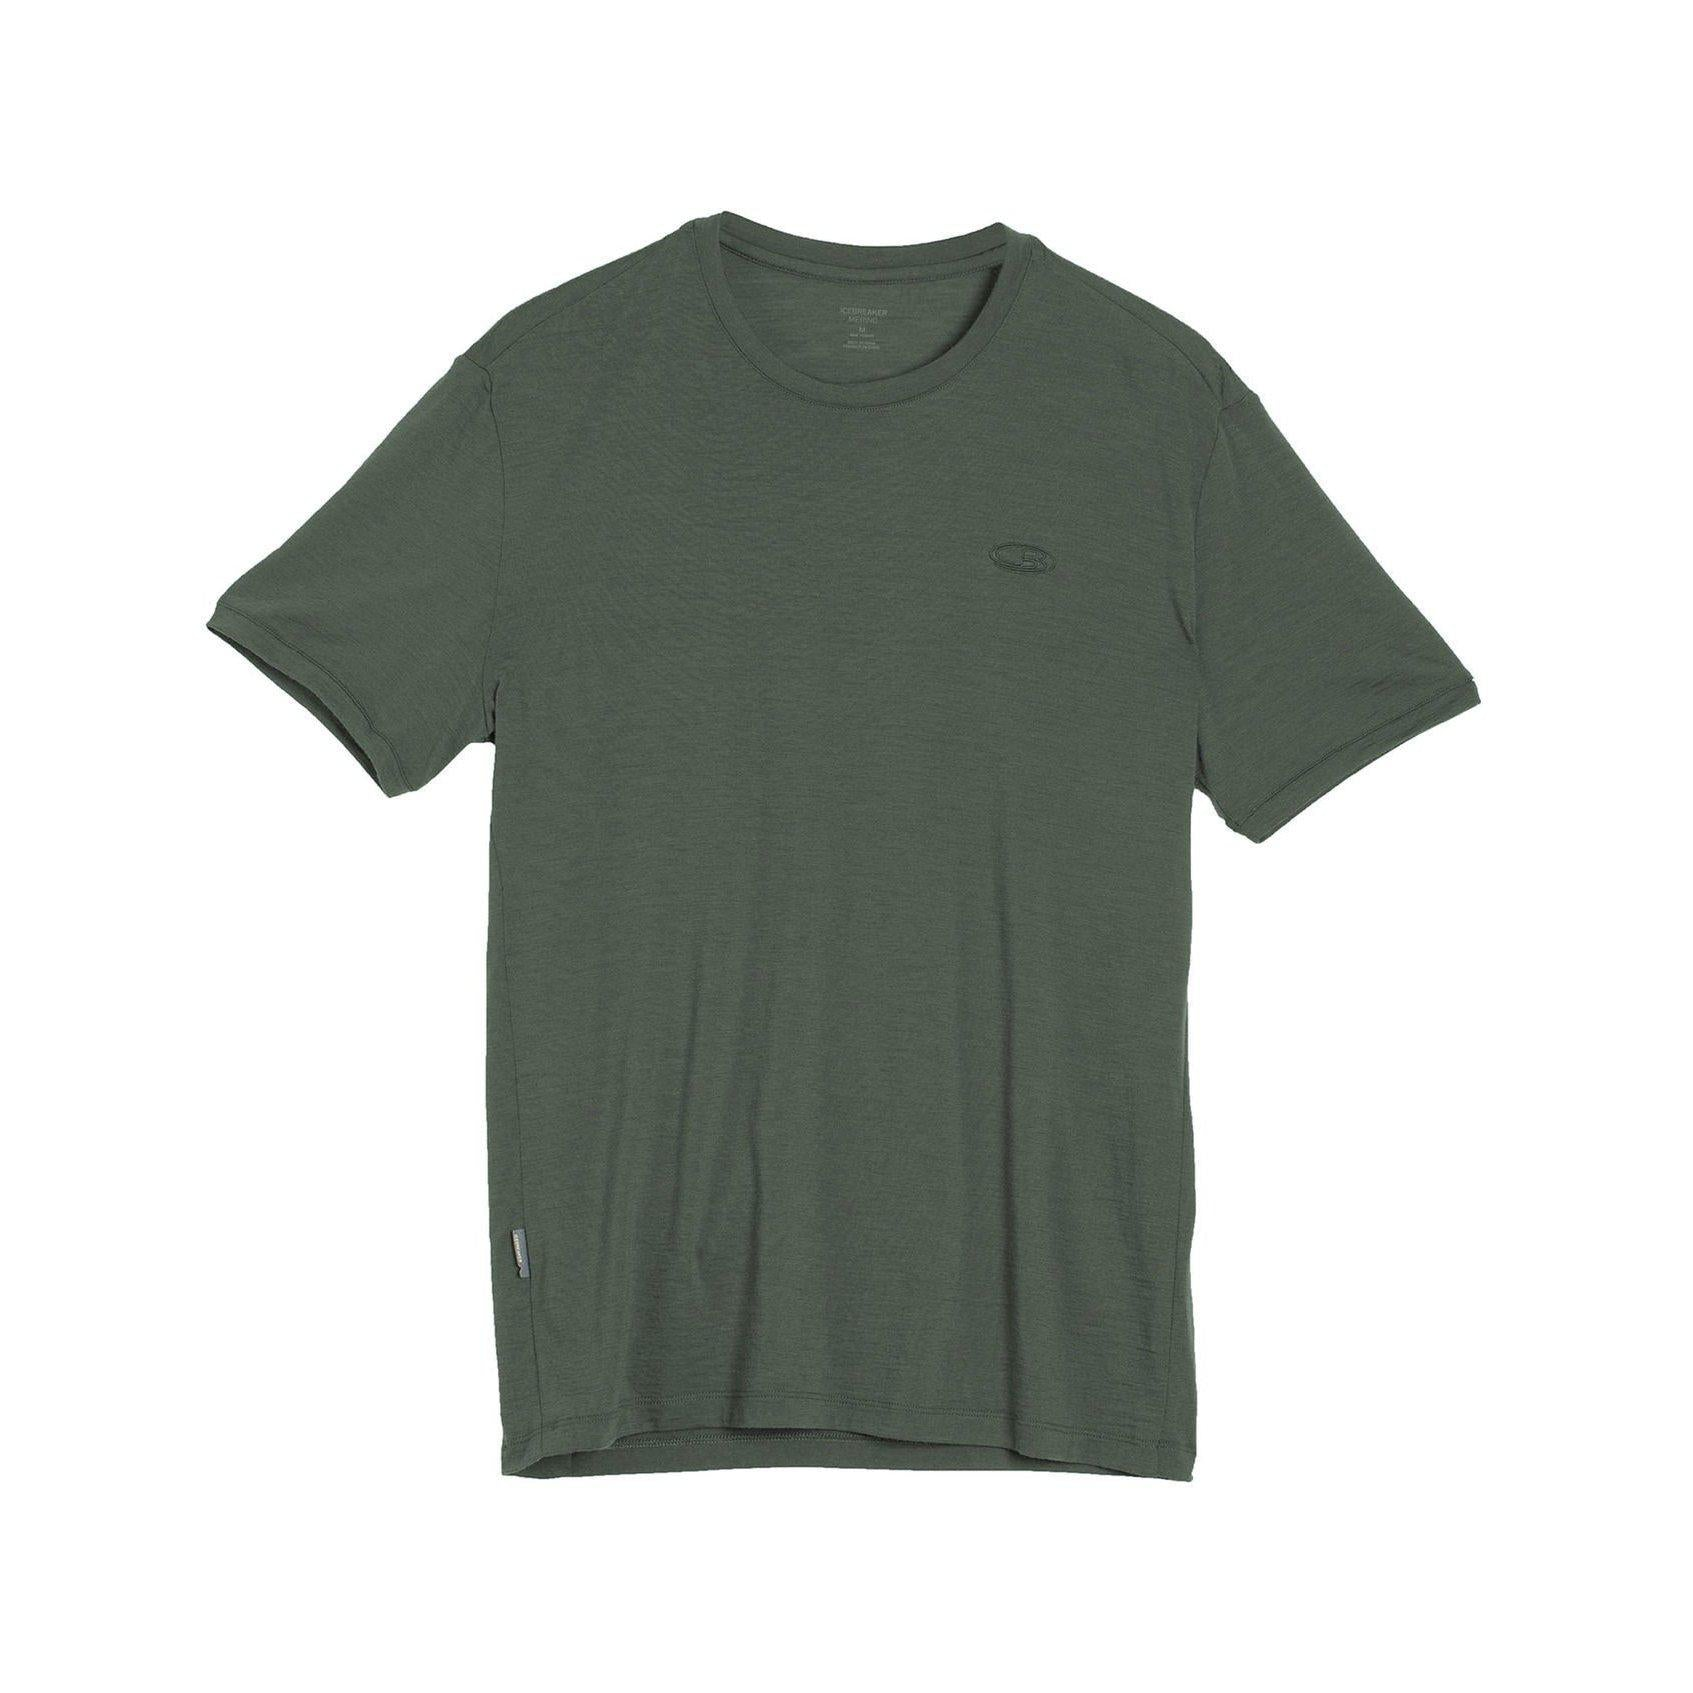 Icebreaker Men's Tech Lite Short Sleeve Crew Top